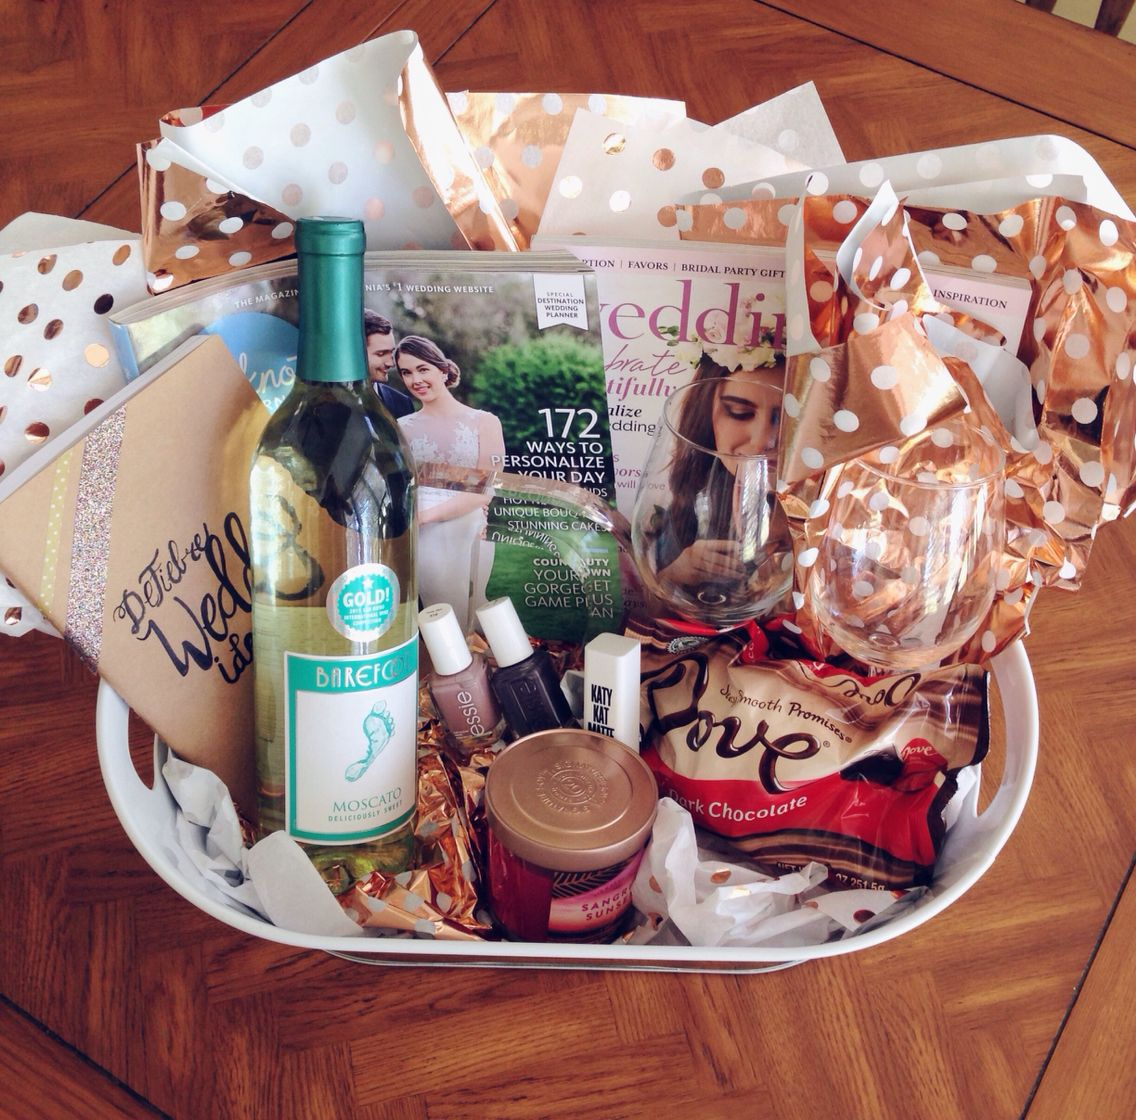 Wedding Gift Ideas For Best Friend Girl: Engagement Gift Basket/Survival Kit! Everything Your